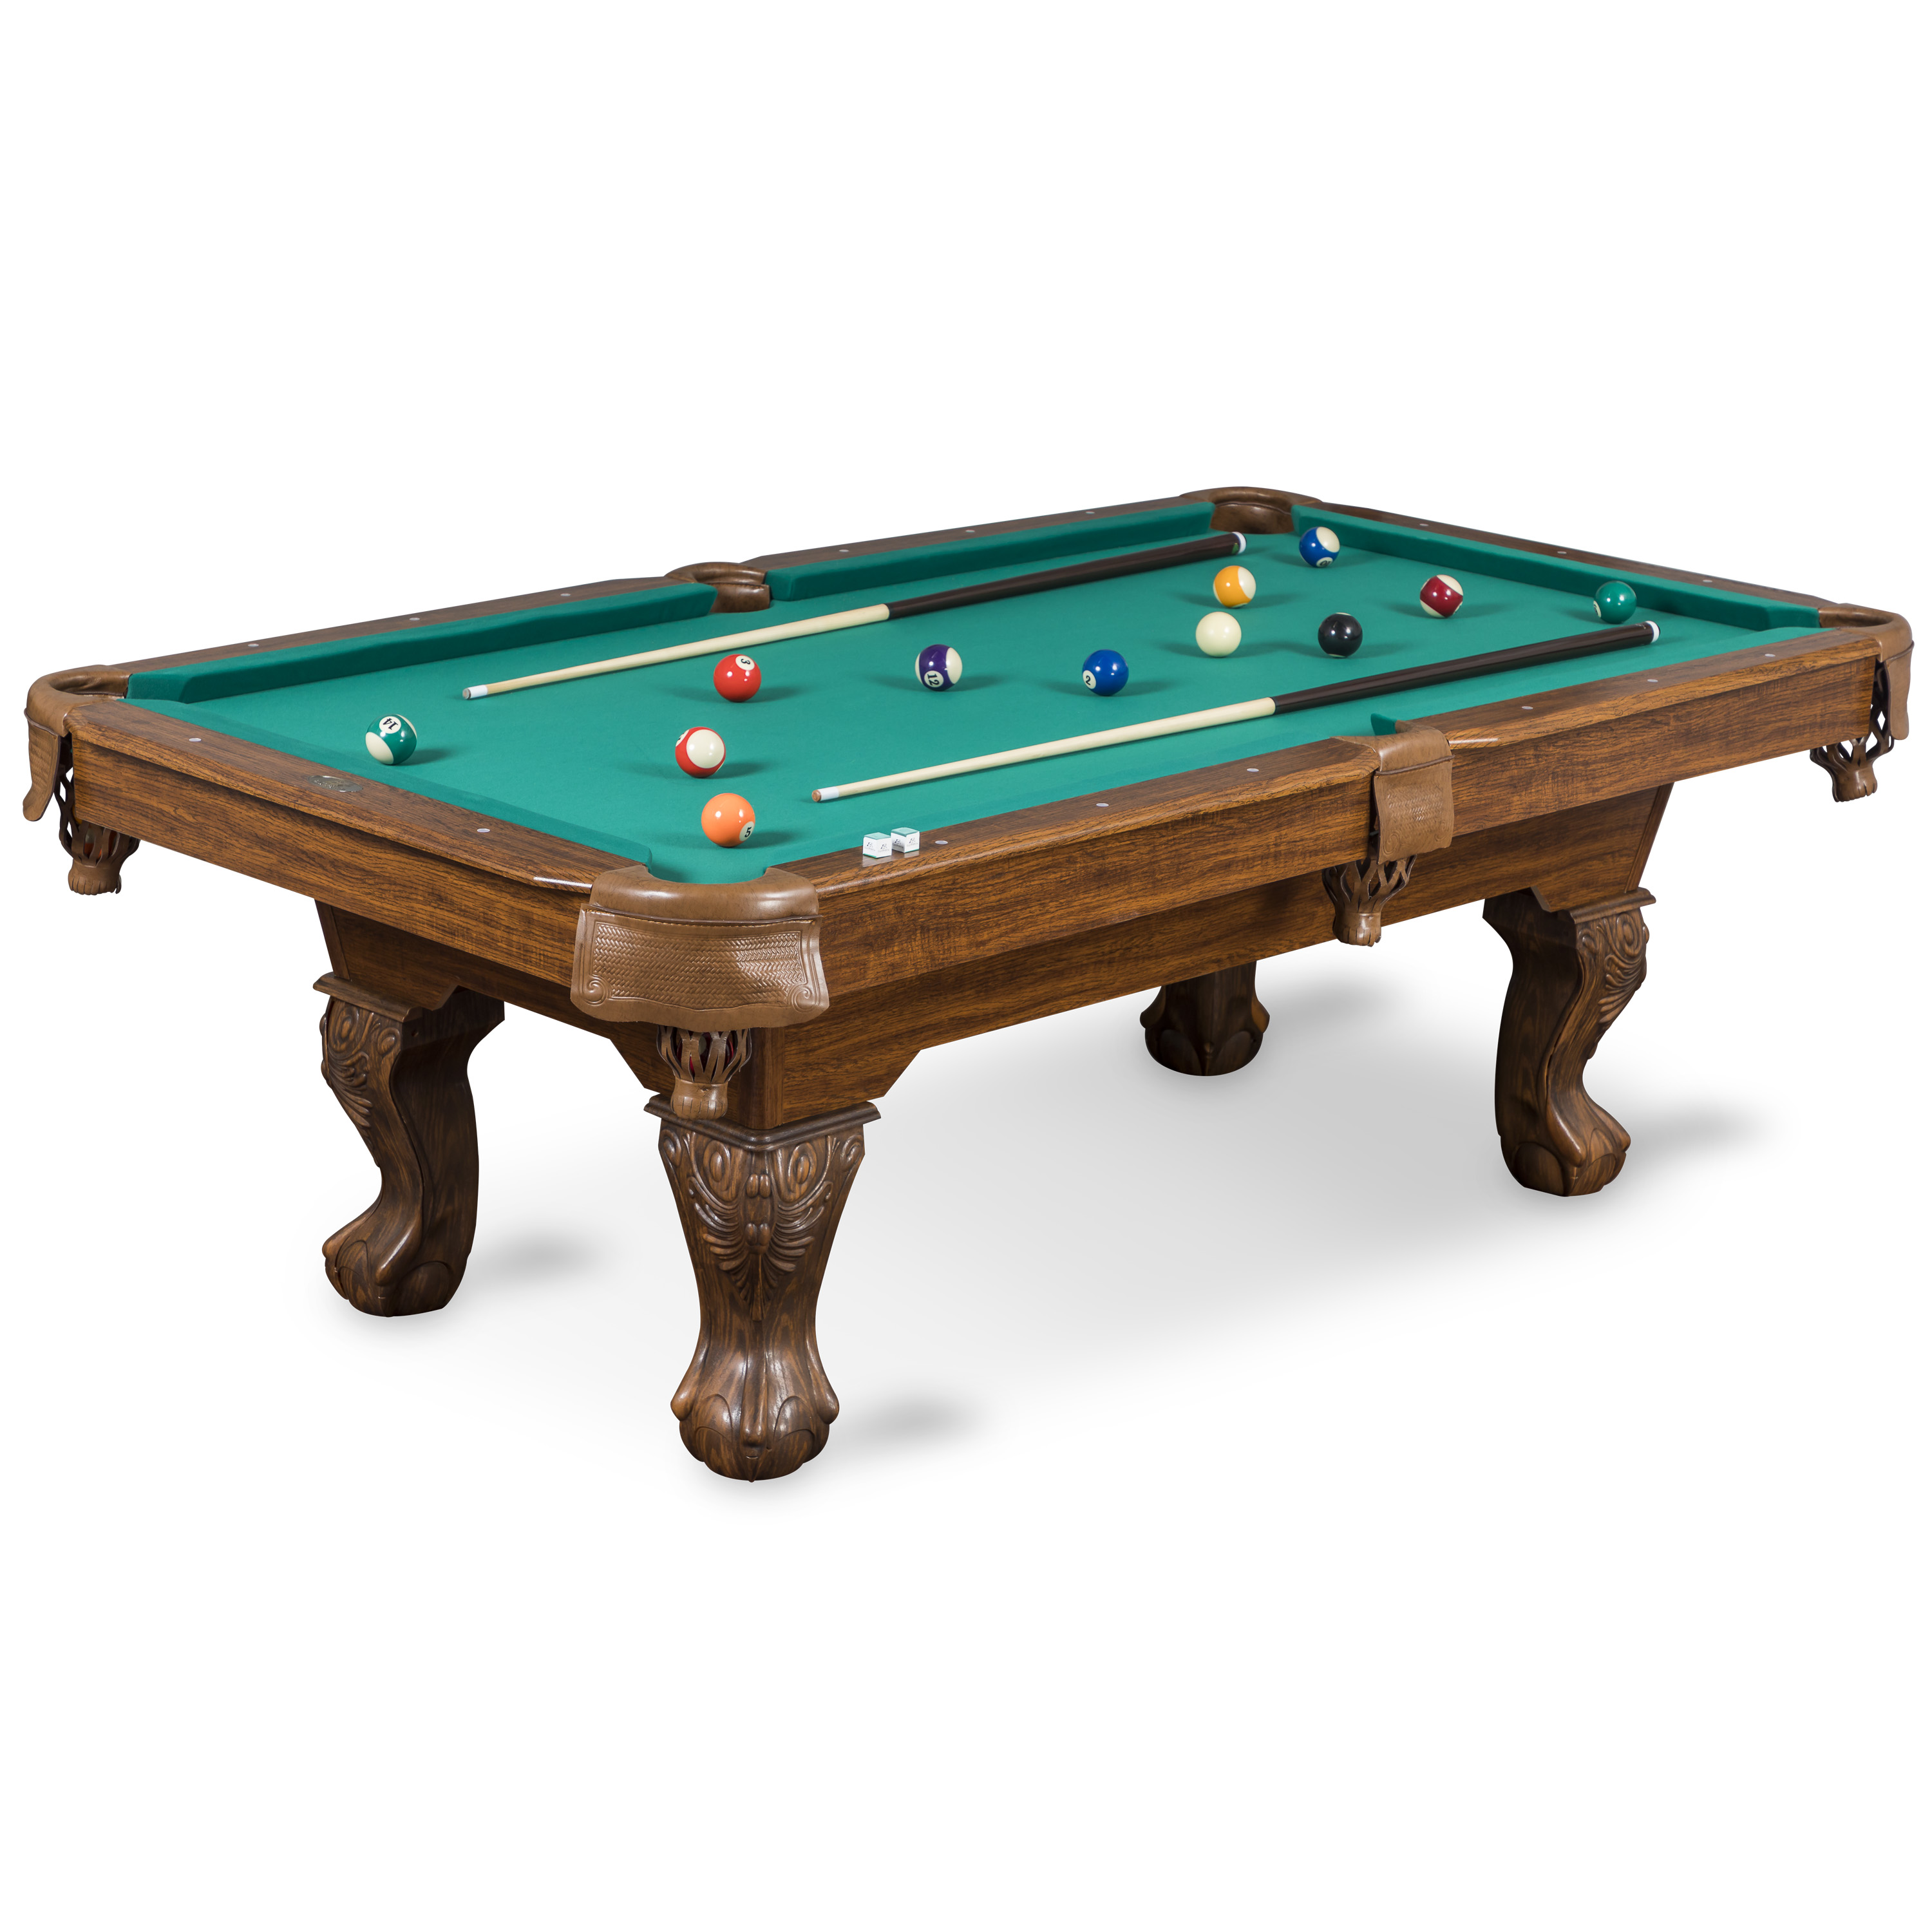 Review of EastPoint Sports Classic 87-inch Brighton Billiard Pool Table